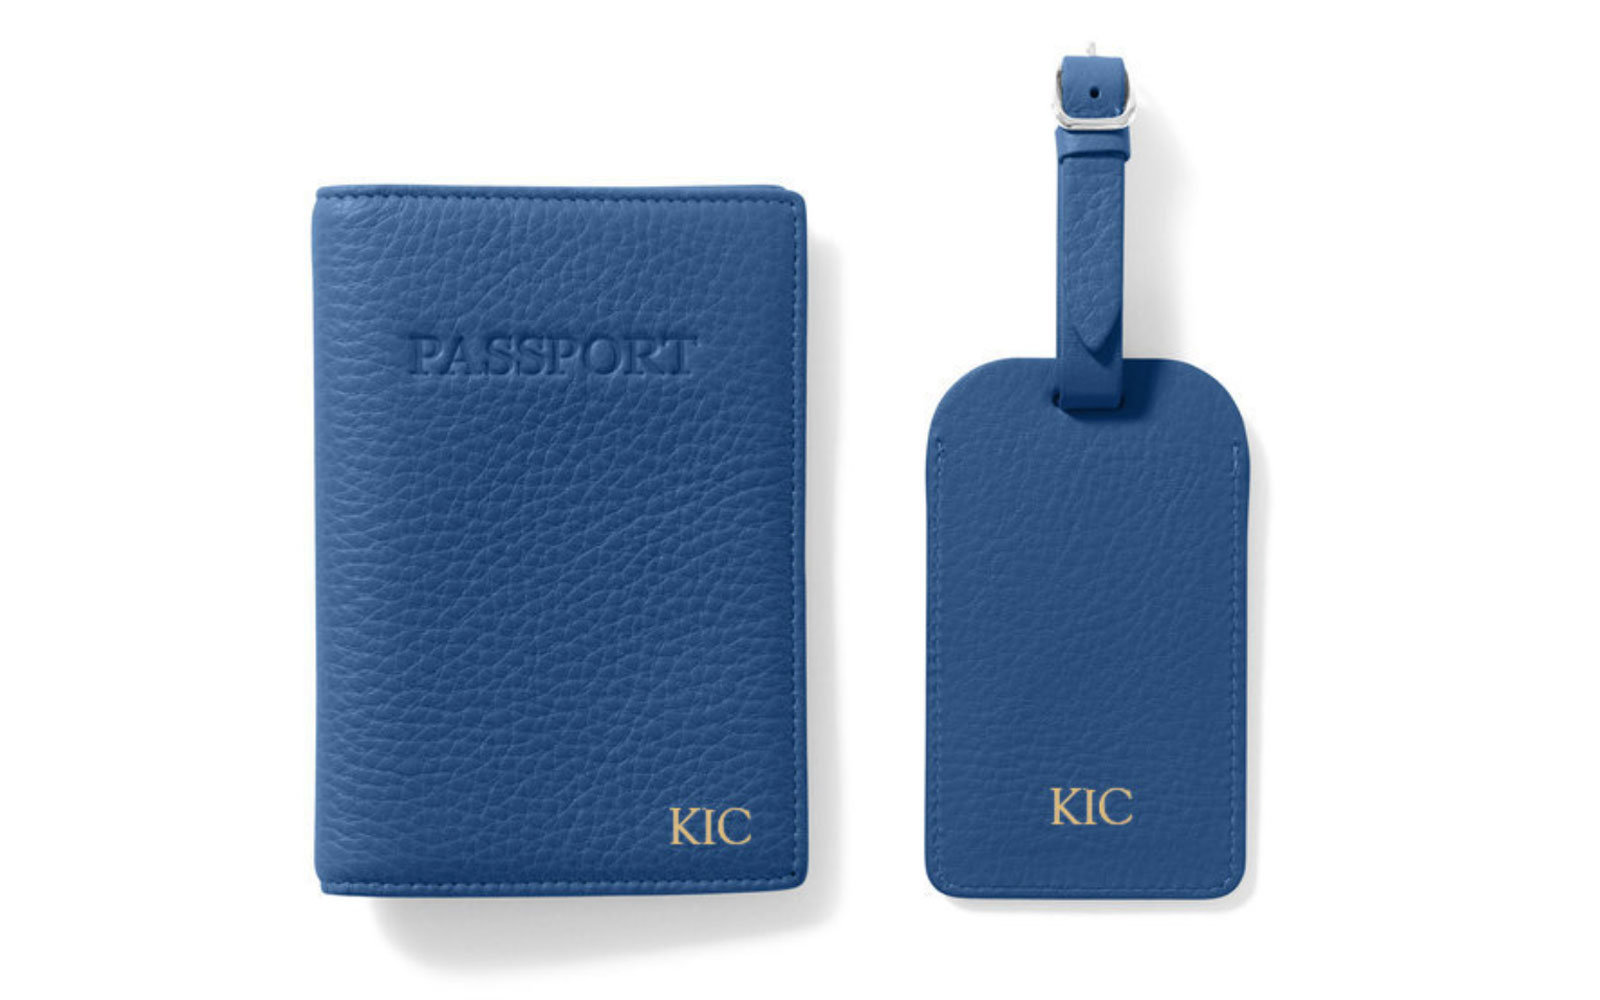 Passport Holder and Luggage Tag